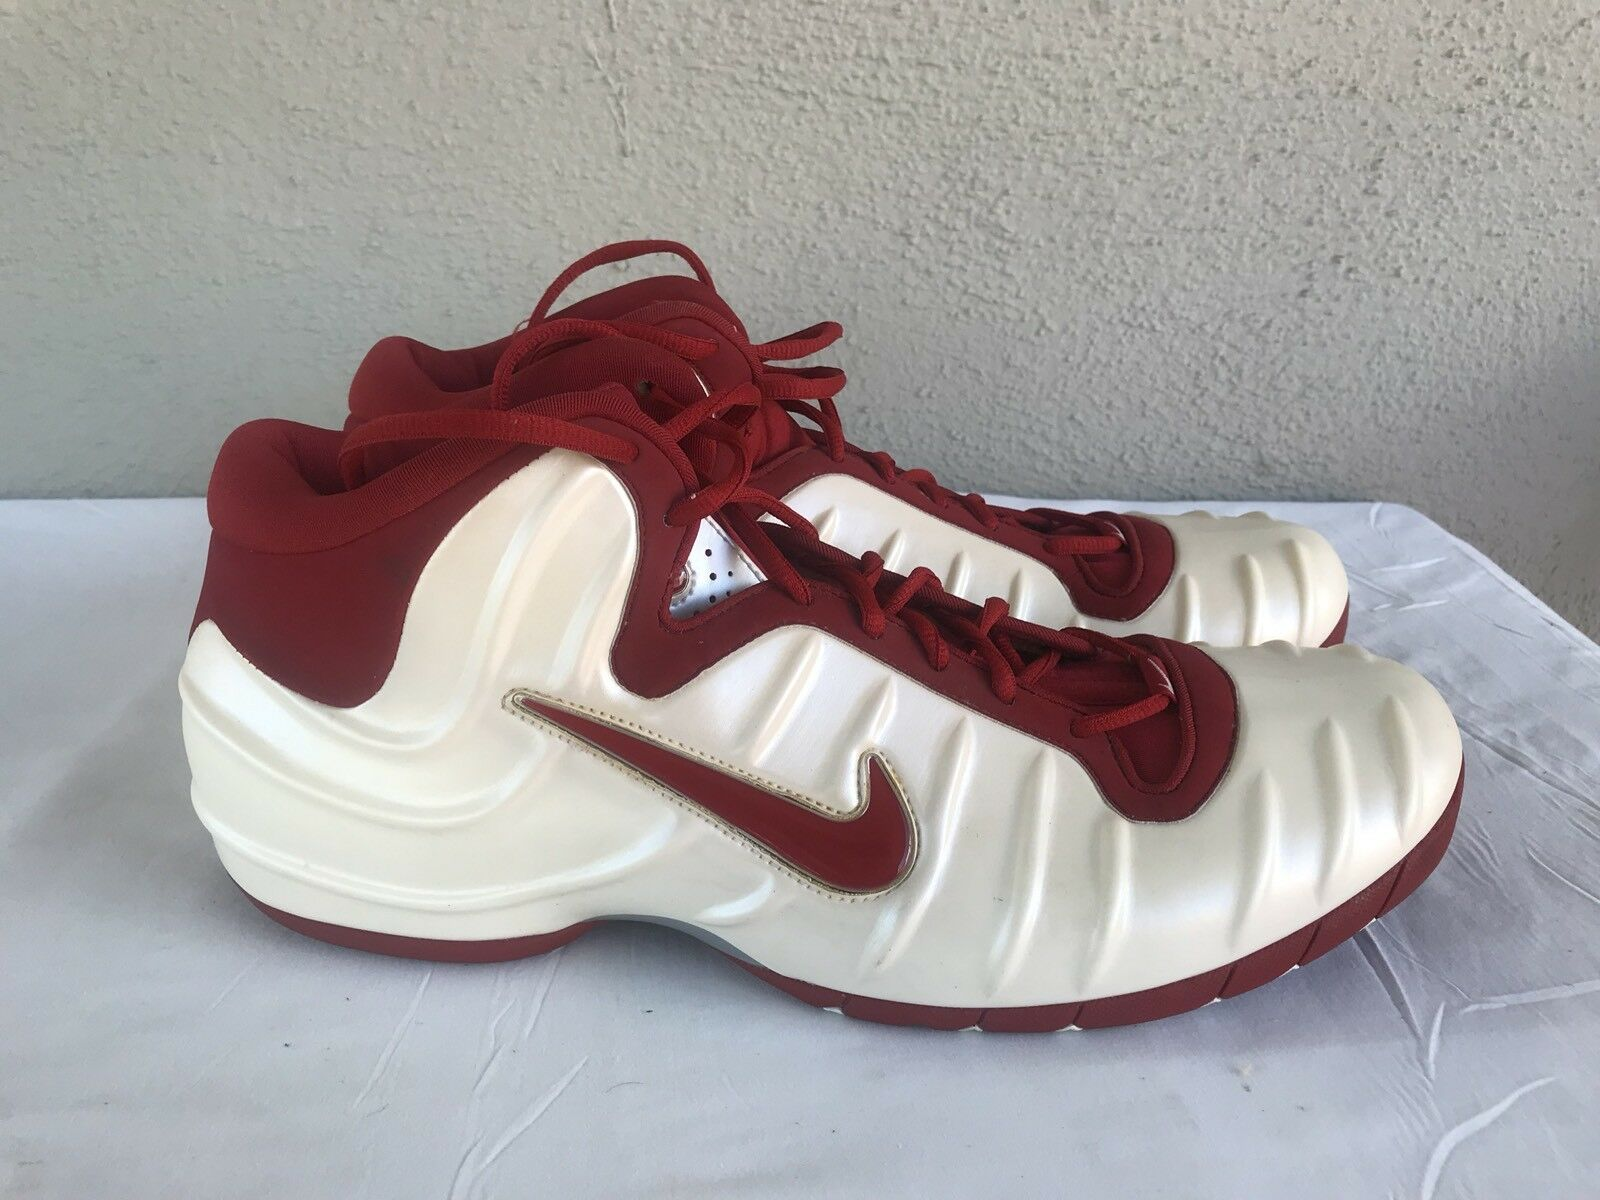 RARE Nike Air Pureposite Foamposite Foamposite Foamposite 2002 Men US 16  Turnschuhe Basketball Athletic B 71568a 9db1c6a47